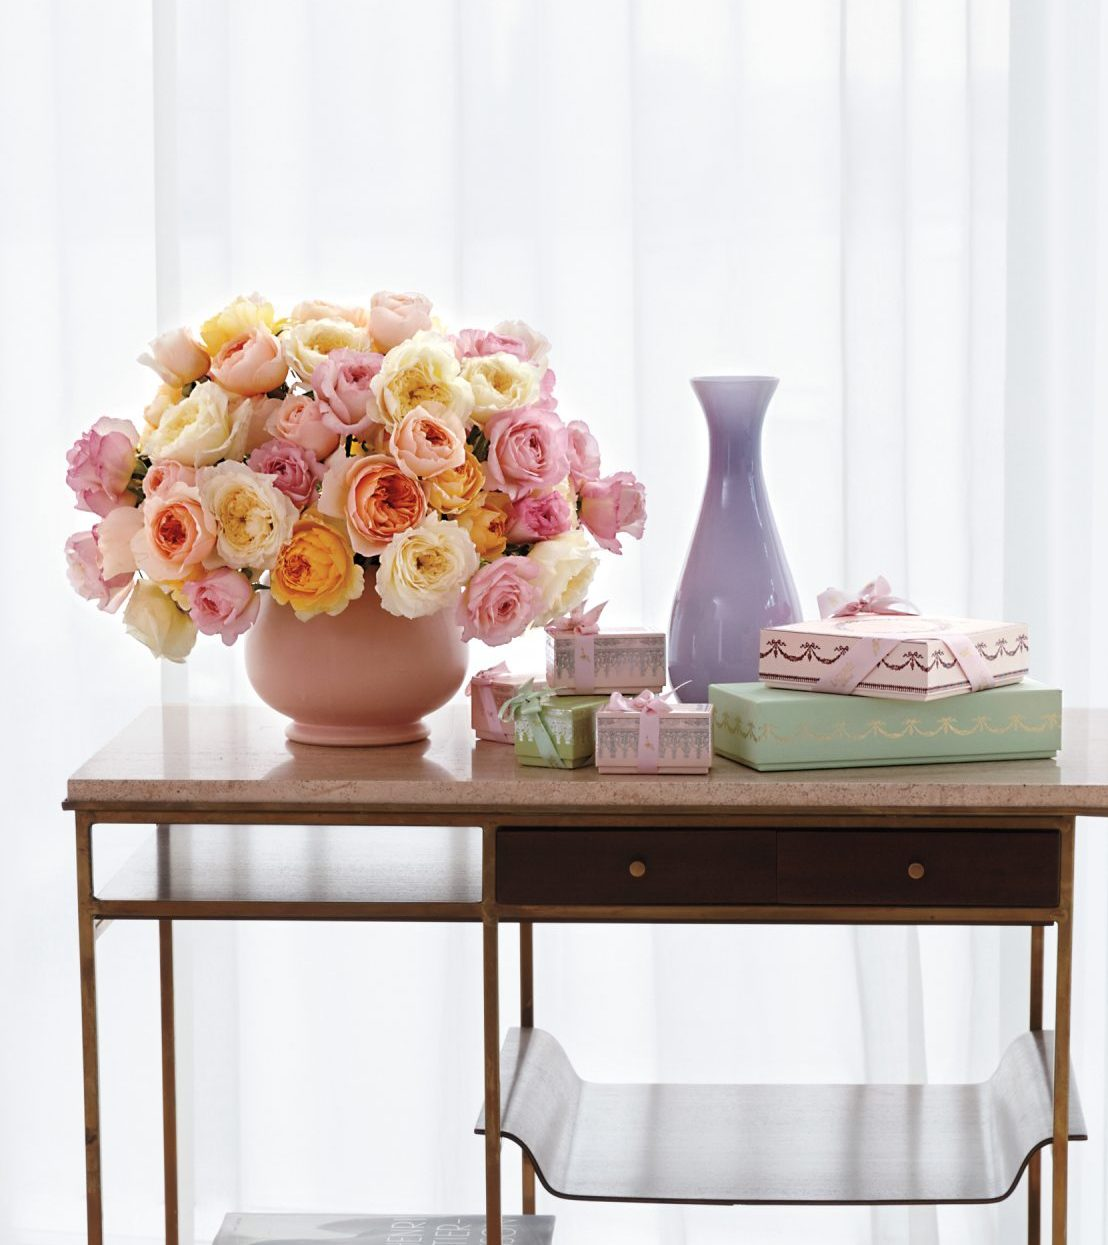 bouquet of roses on a bar cart